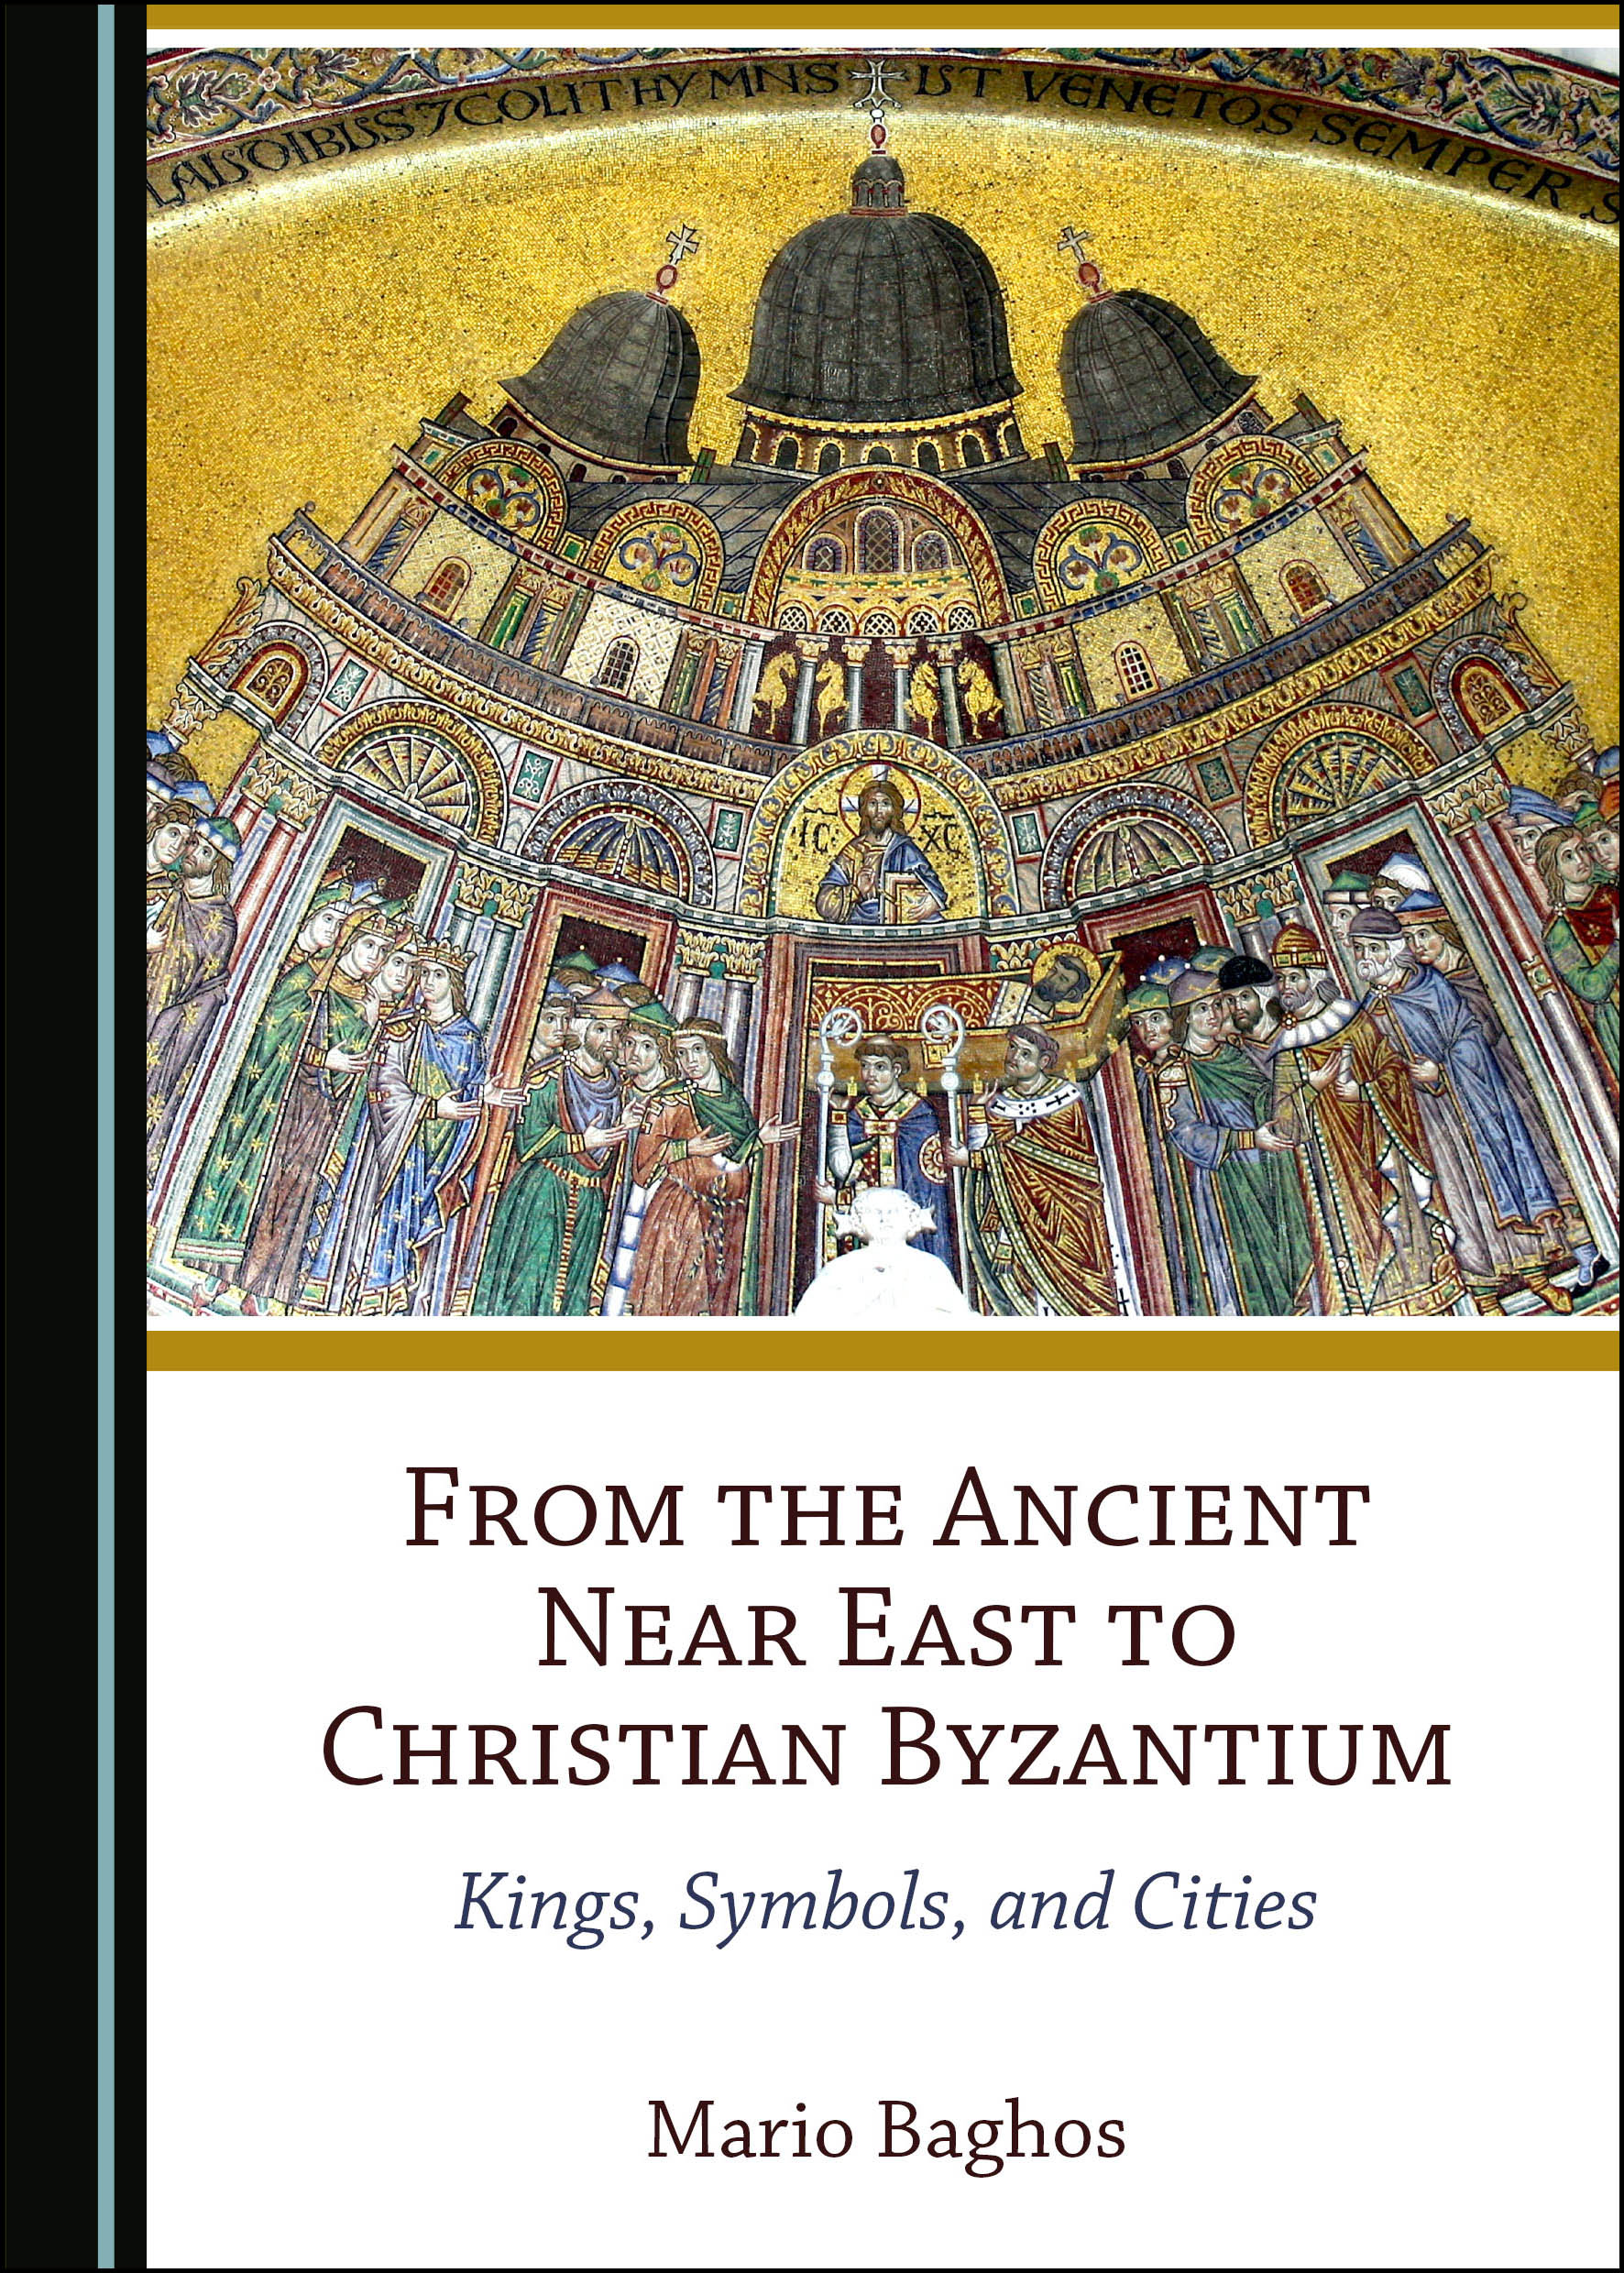 From the Ancient Near East to Christian Byzantium: Kings, Symbols, and Cities